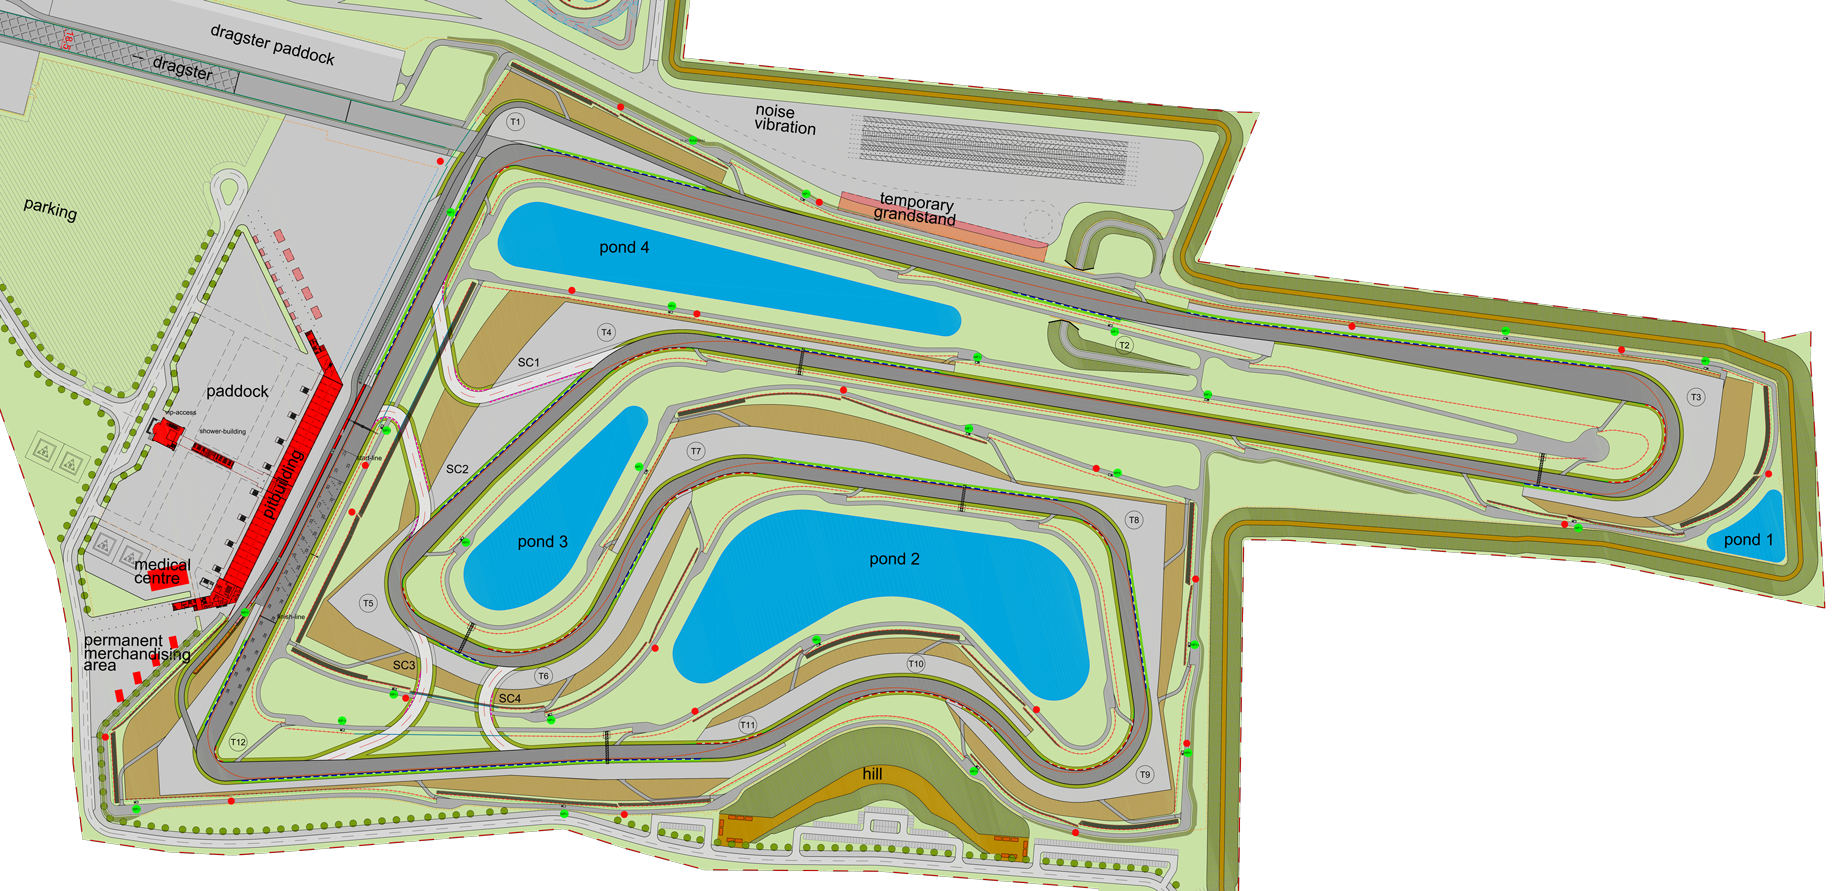 chang international circuit - Google Search | Race Tracks ...